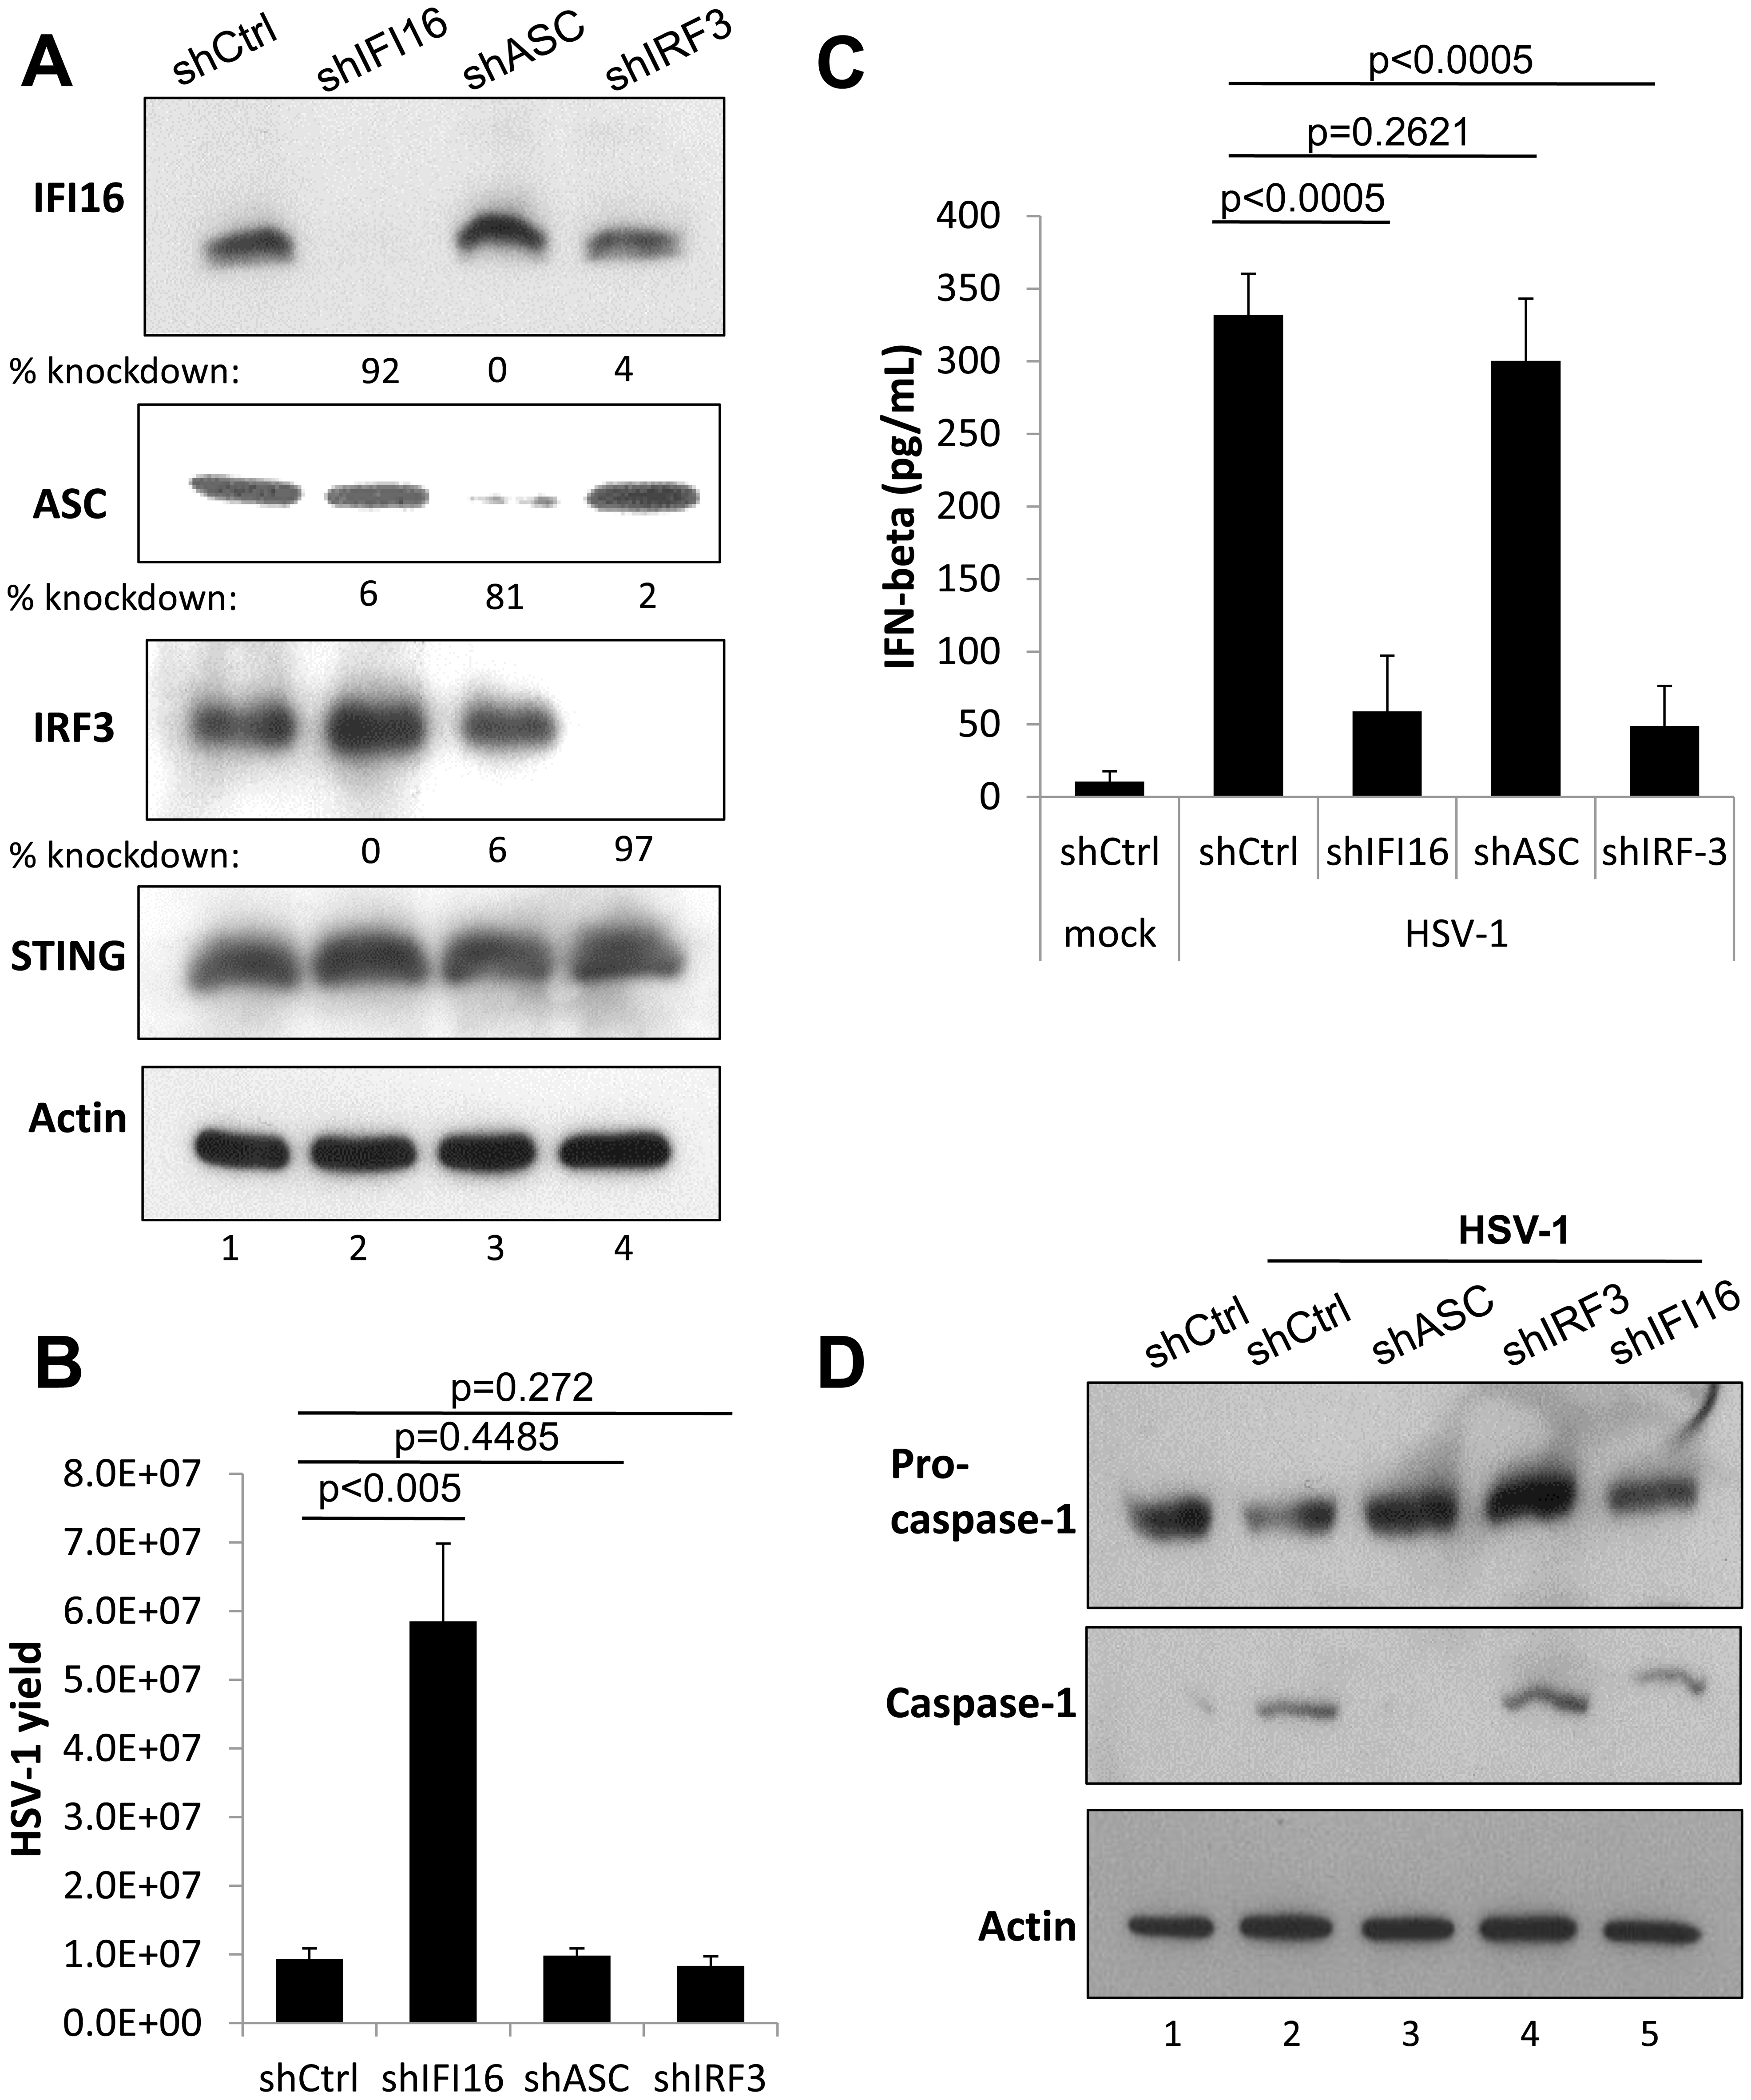 Effect of IFI16, ASC, and IRF3 knockdown on HSV-1 replication.